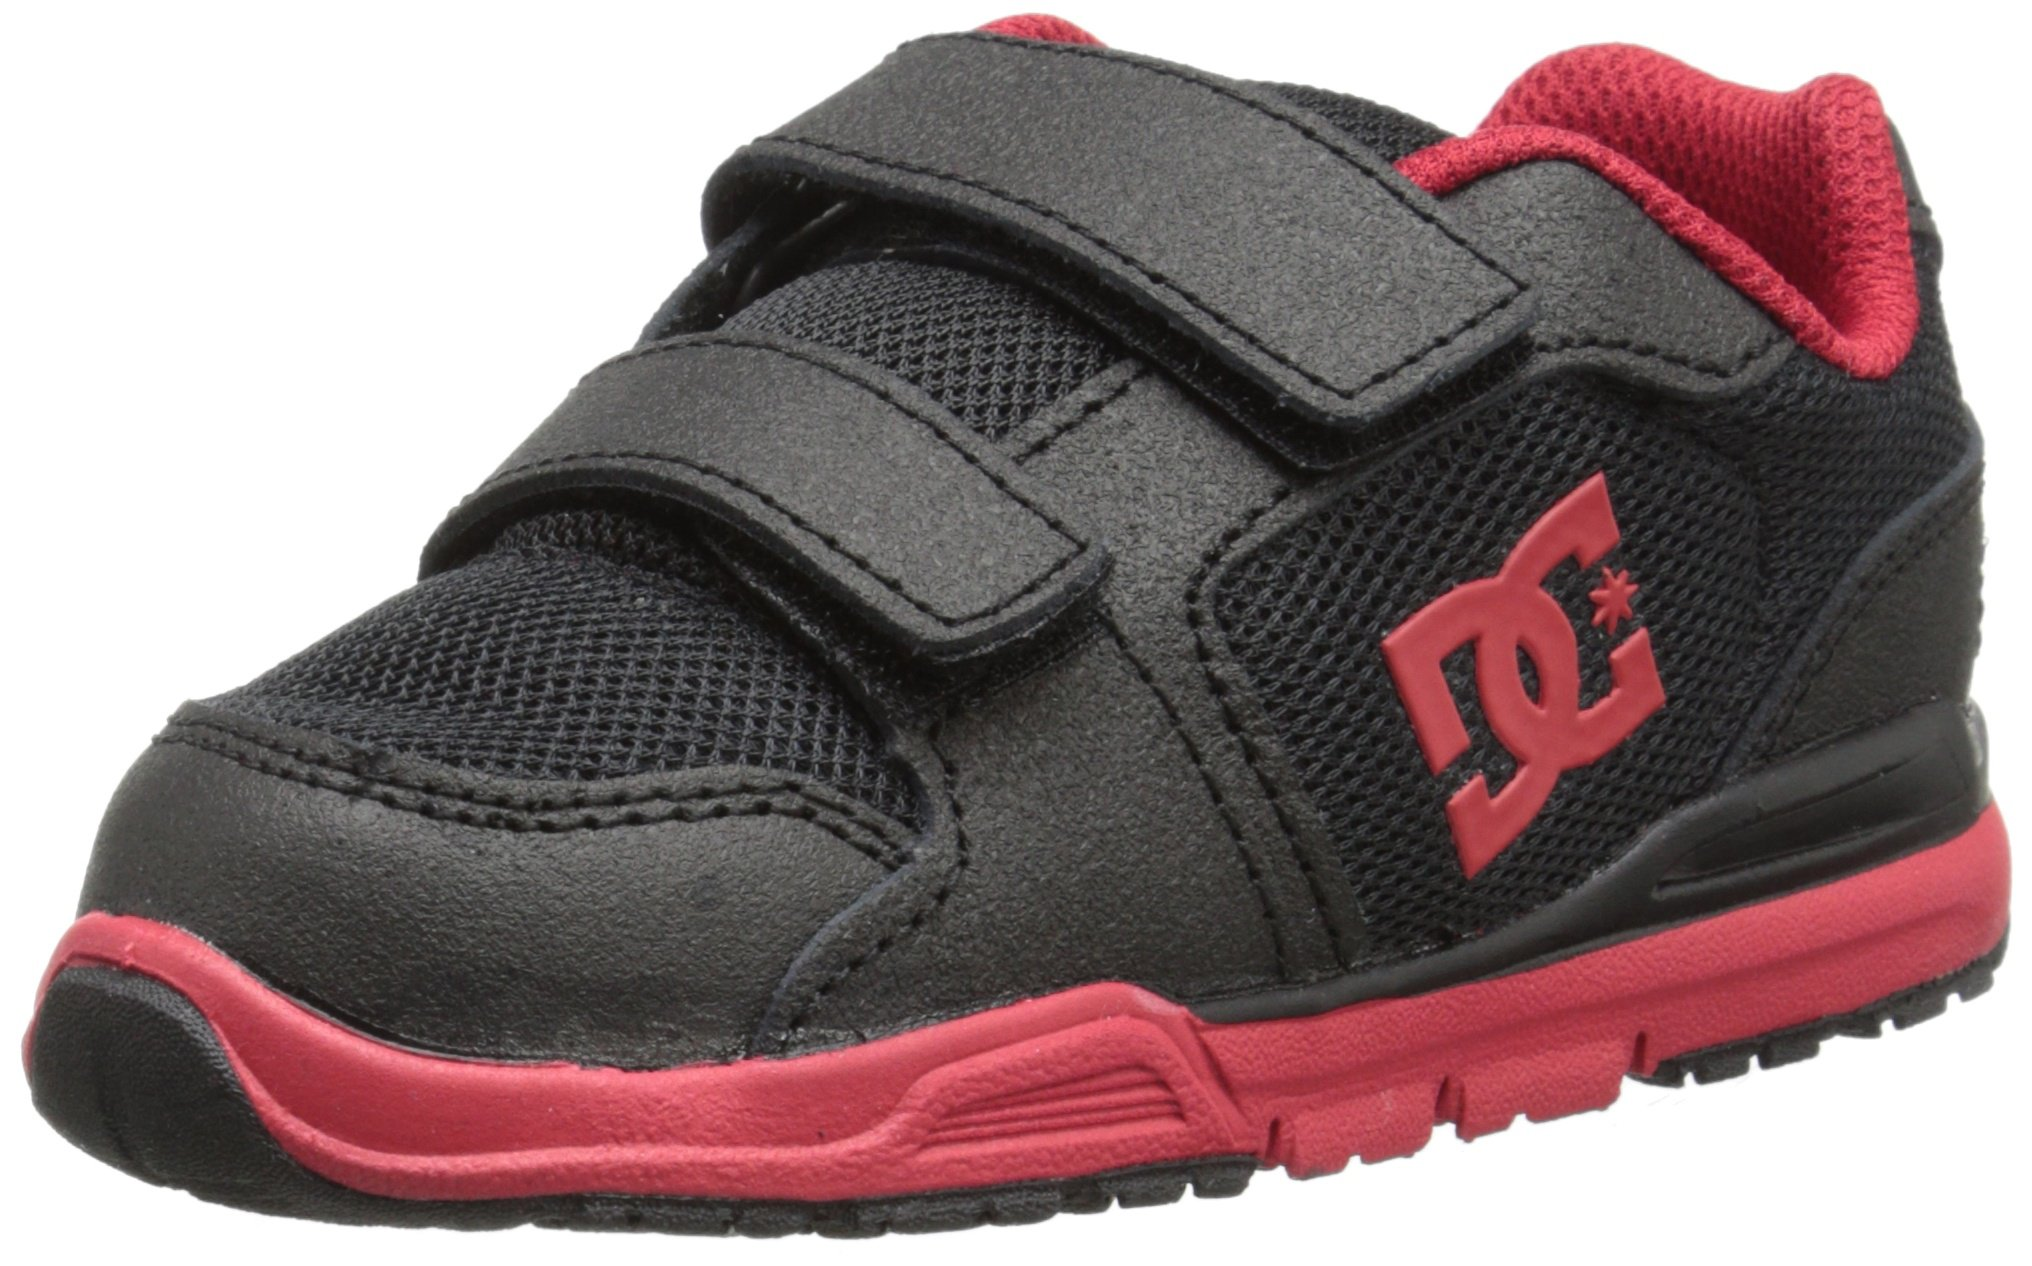 DC Shoes Baby-Girls Shoes Forter V - Low-Top Shoes - Toddler - US 7 - Black Black/Athletic Red US 7 / UK 6 / EU 23